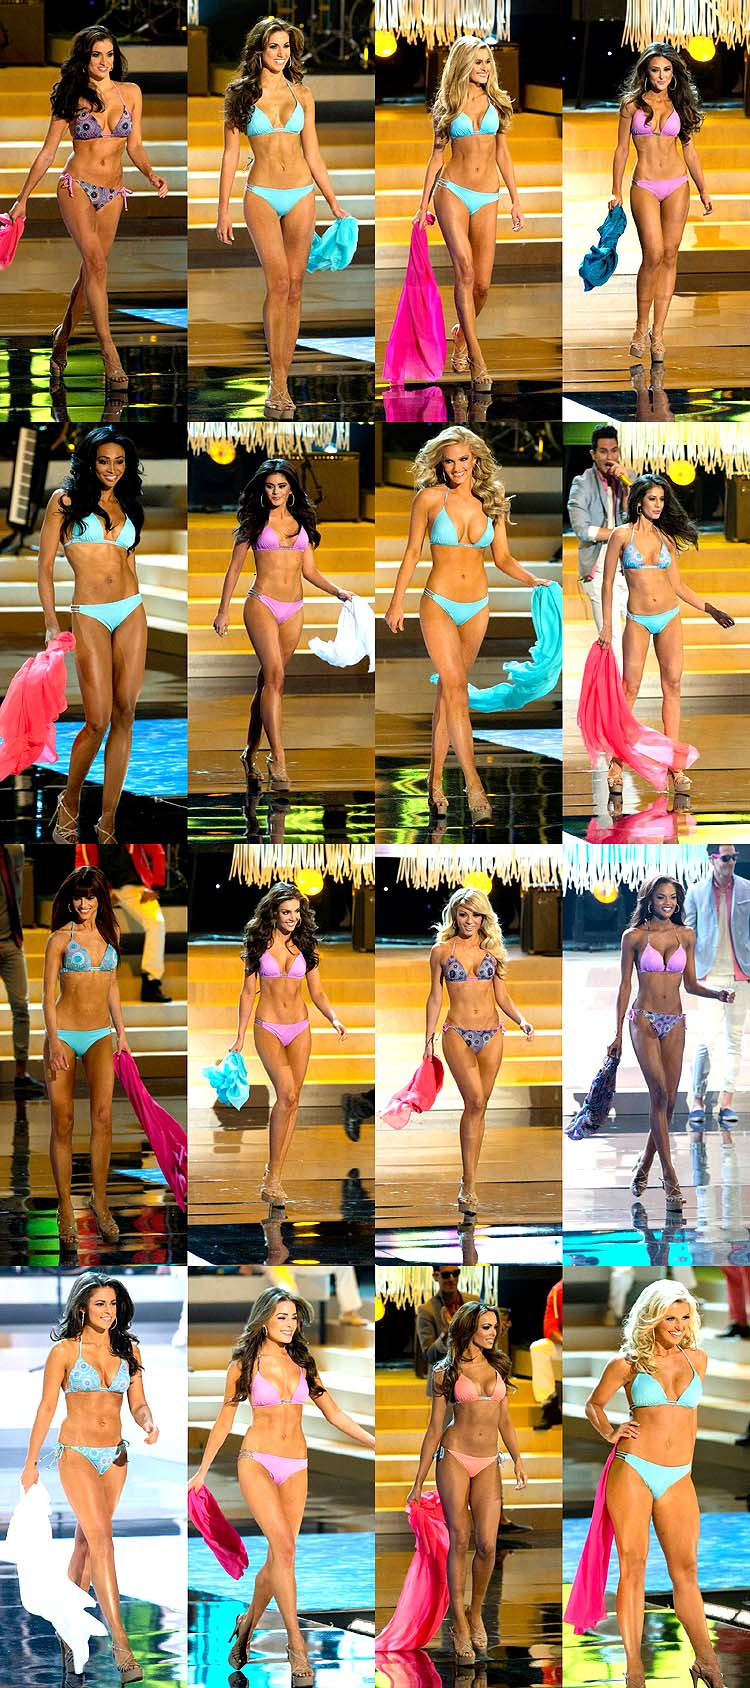 Miss USA 2012 Swimsuit Competition: Tennessee, Alabama, Ohio, Michigan, Maryland, New Jersey, Texas, Colorado, Oklahoma, Louisiana, Maine, Georgia, South Carolina, Rhode Island, Nevada, Arkansas